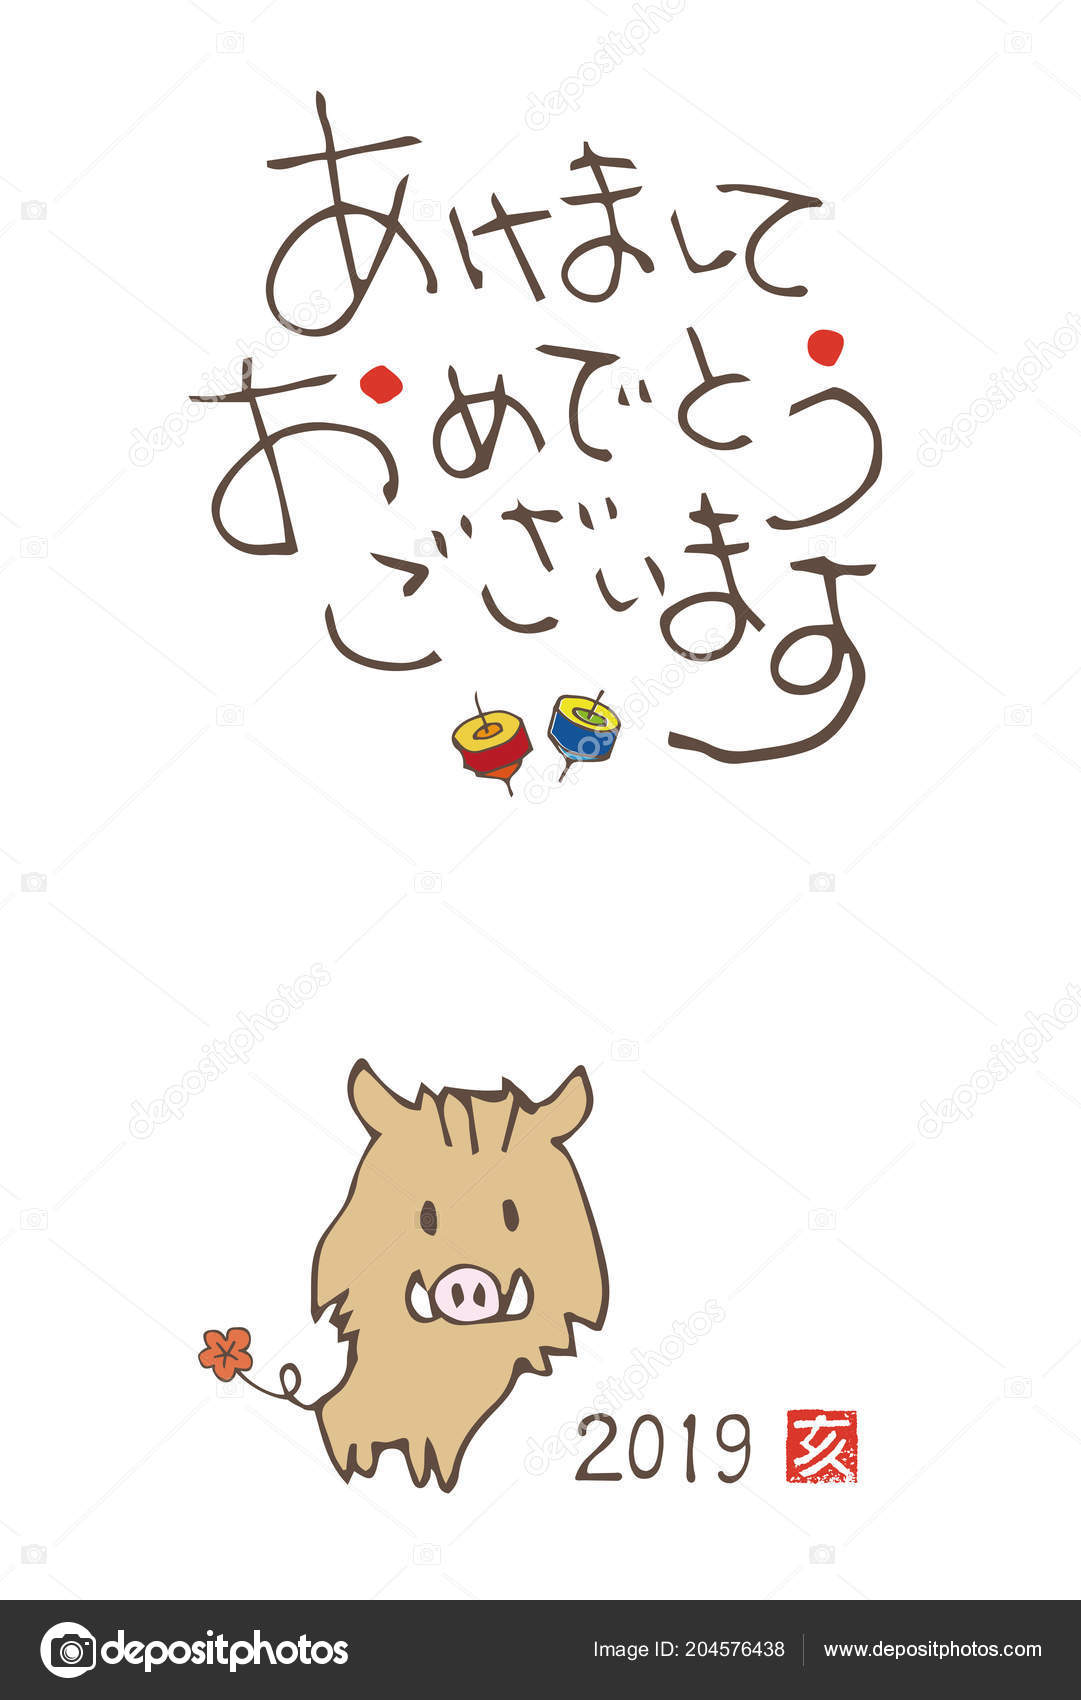 New year greeting japanese words year 2019 translation japanese new year greeting japanese words year 2019 translation japanese happy stock vector m4hsunfo